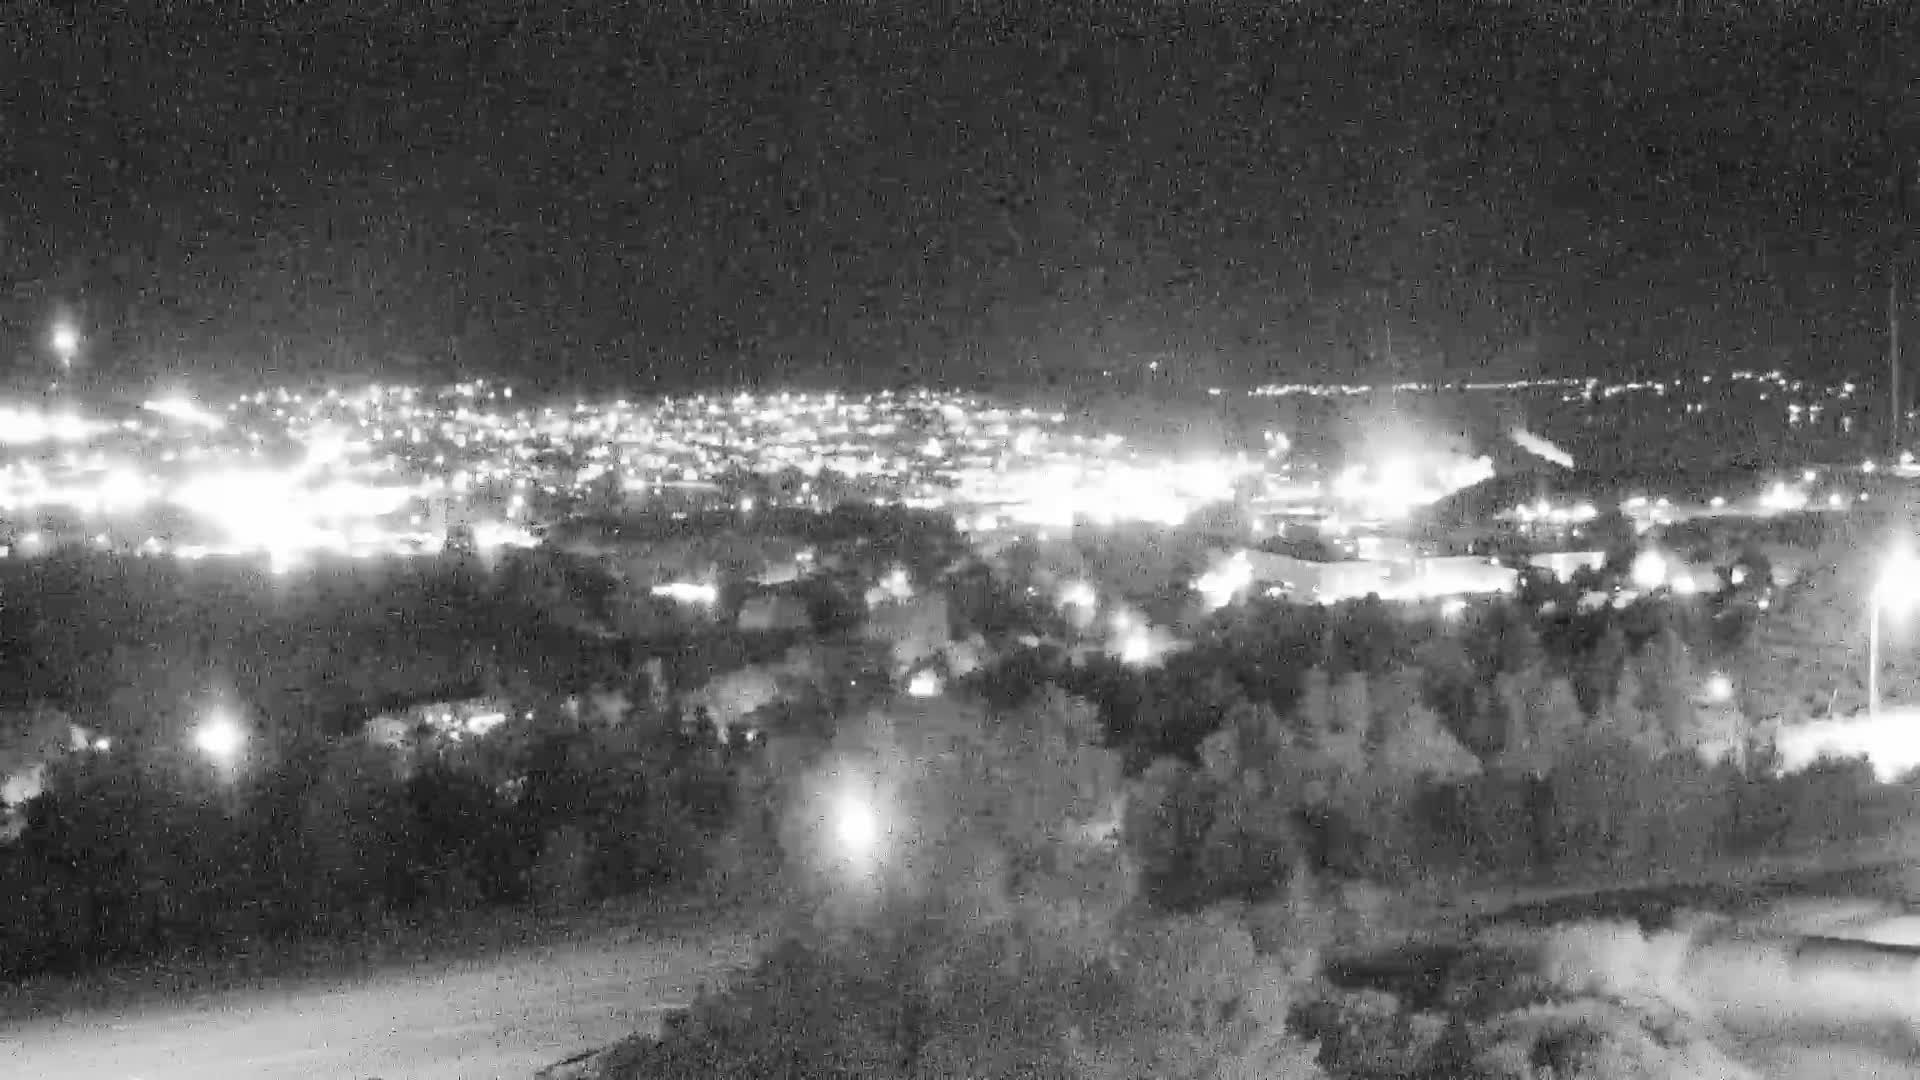 CornerBrook,Seabrook Webcam